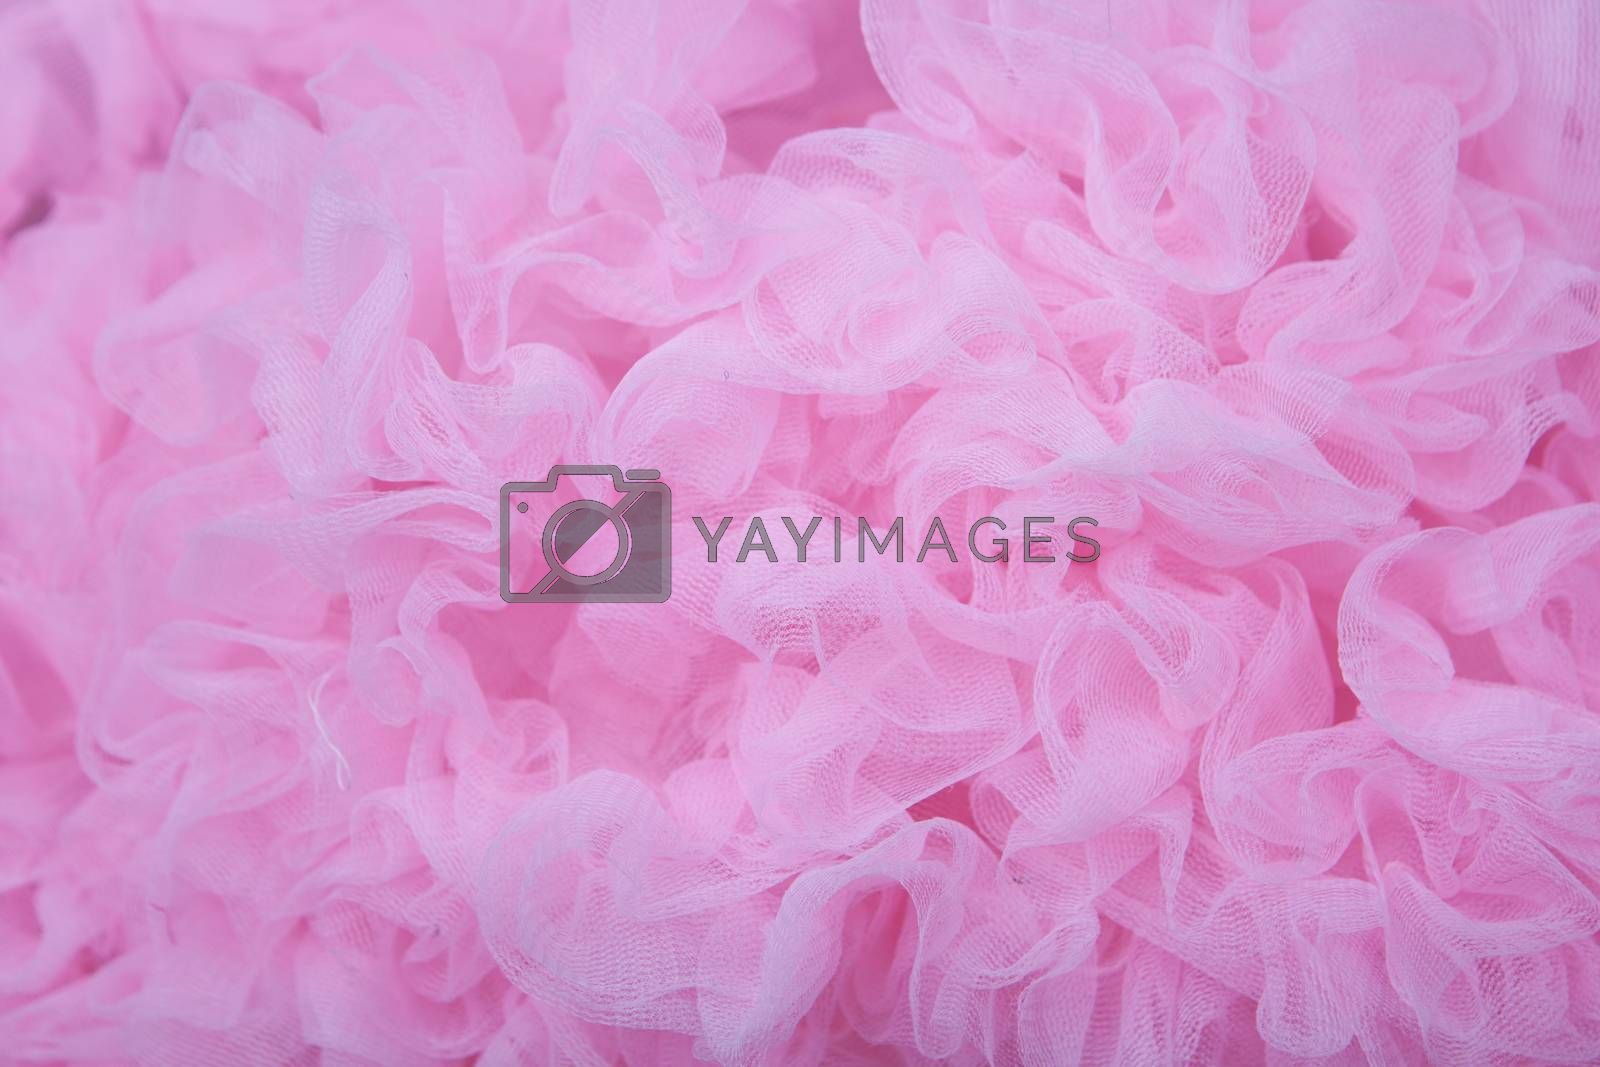 pink textured background by mandy_godbehear